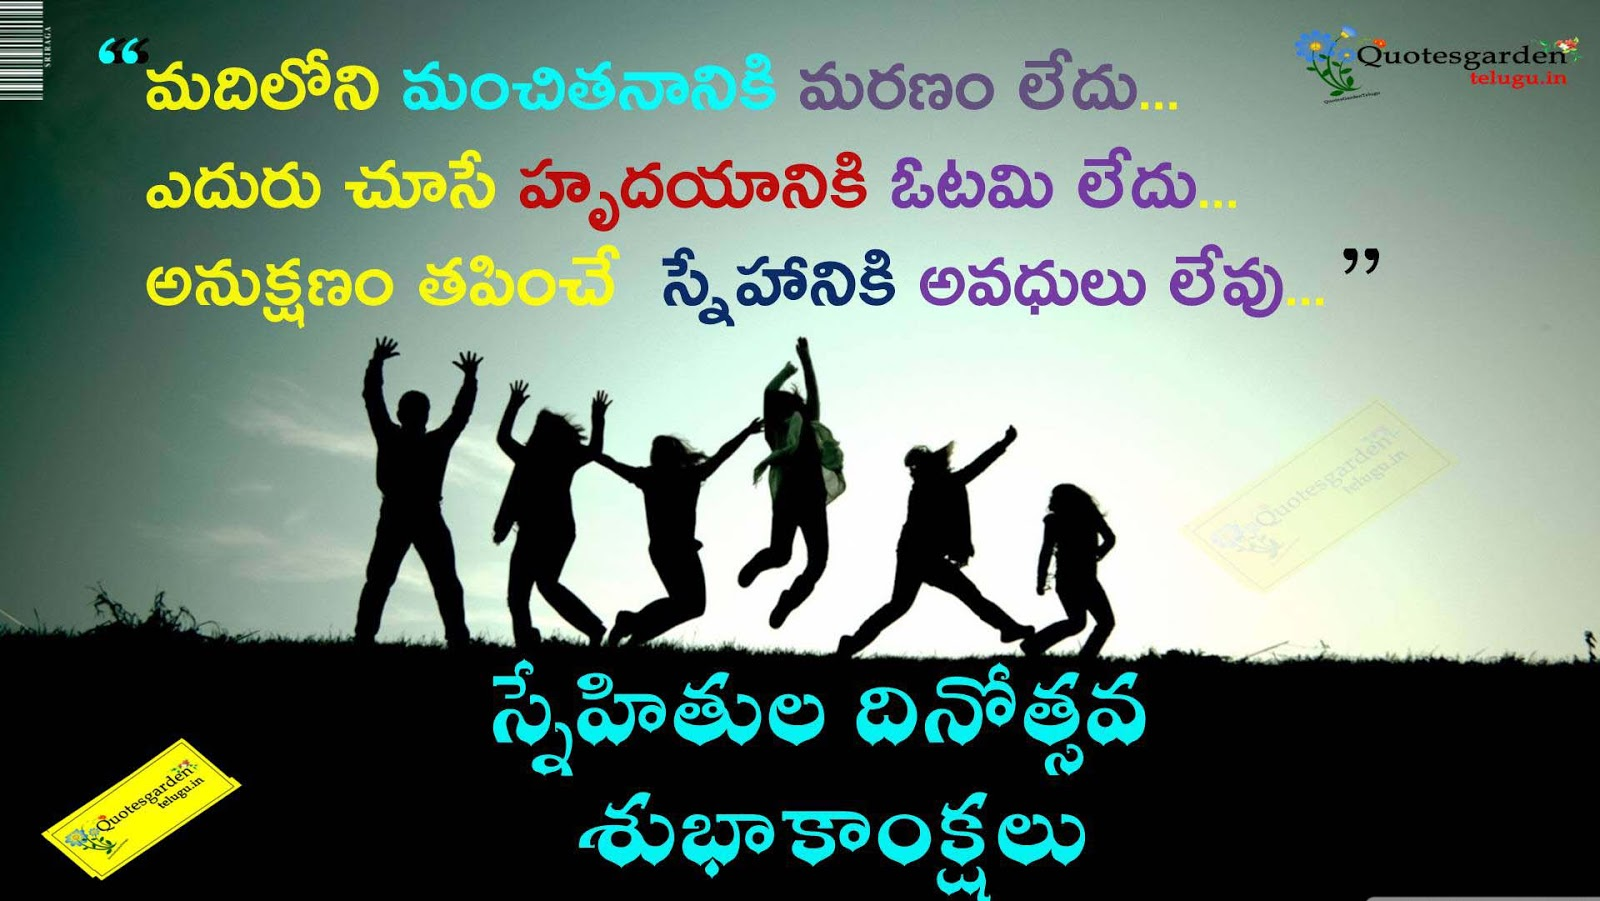 Friendship Day Pics With Quotes: Heart Touching Friendship Day Quotes In Telugu With Hd